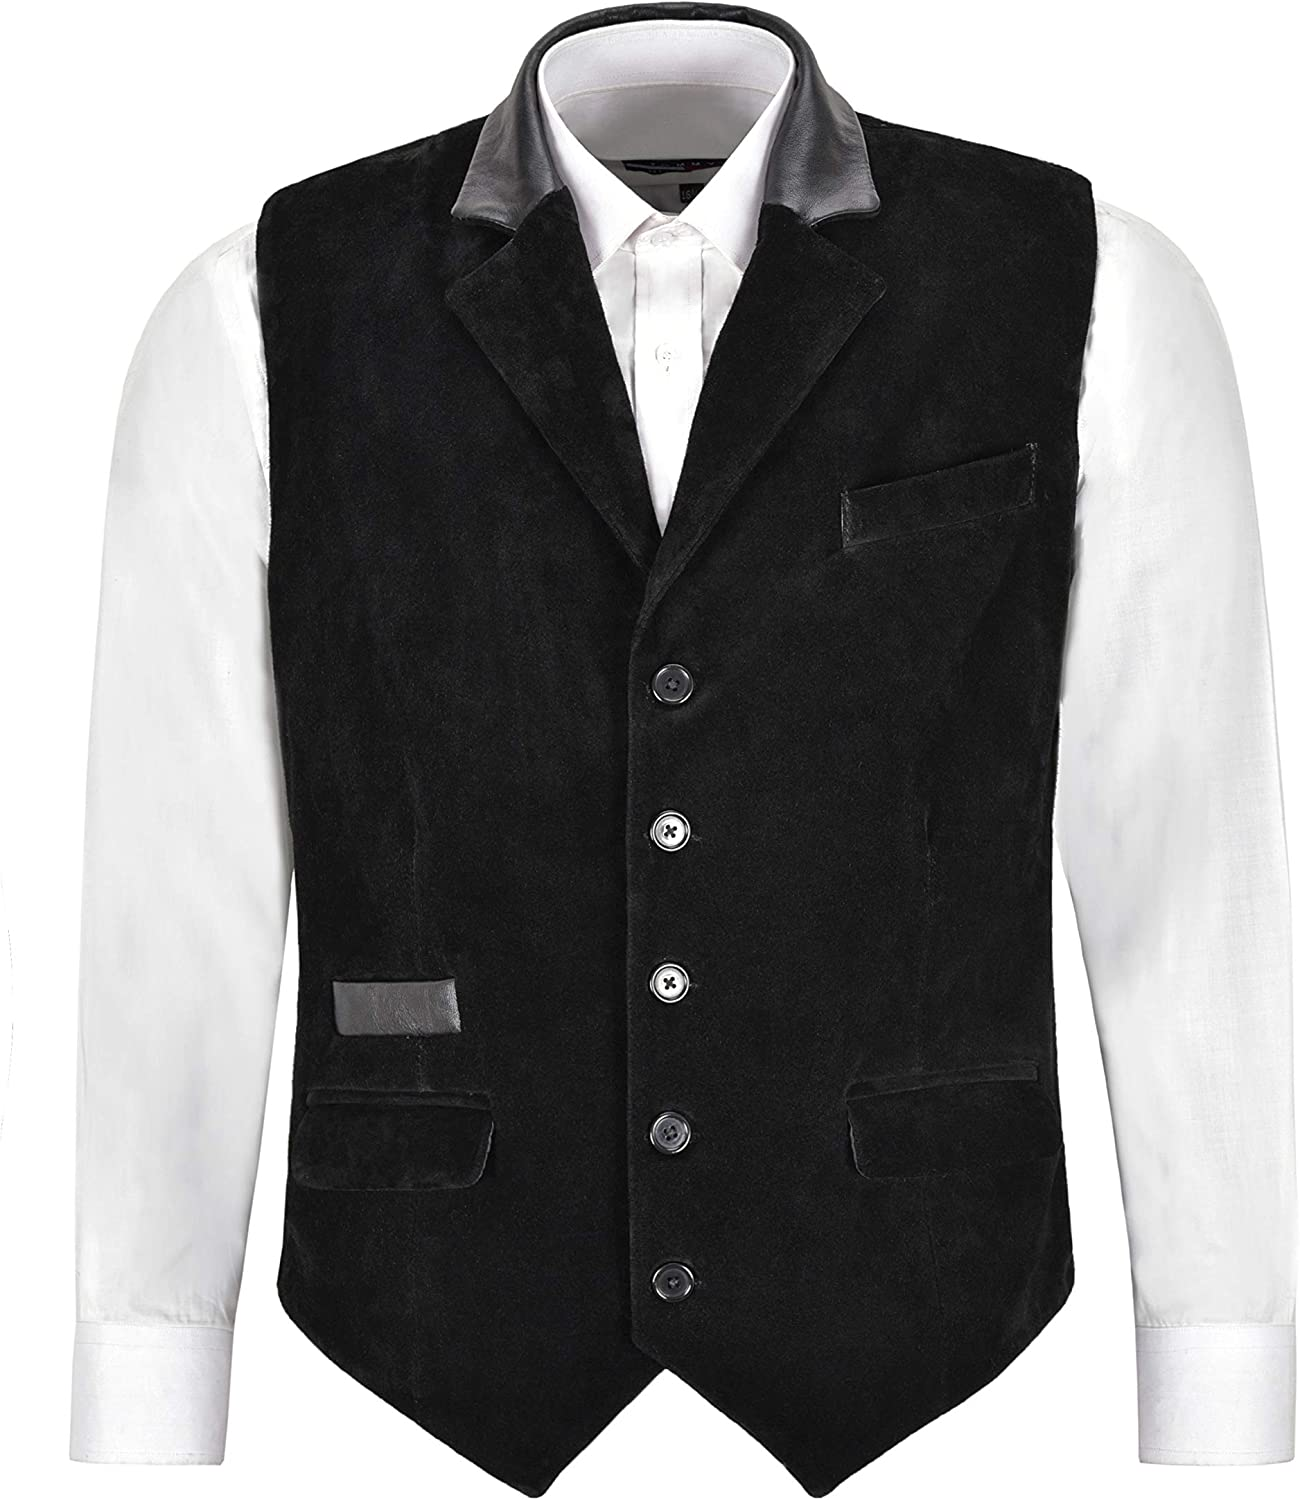 Men's Real Leather Waistcoat Black Suede Party Fashion Classic Business Vest 7175